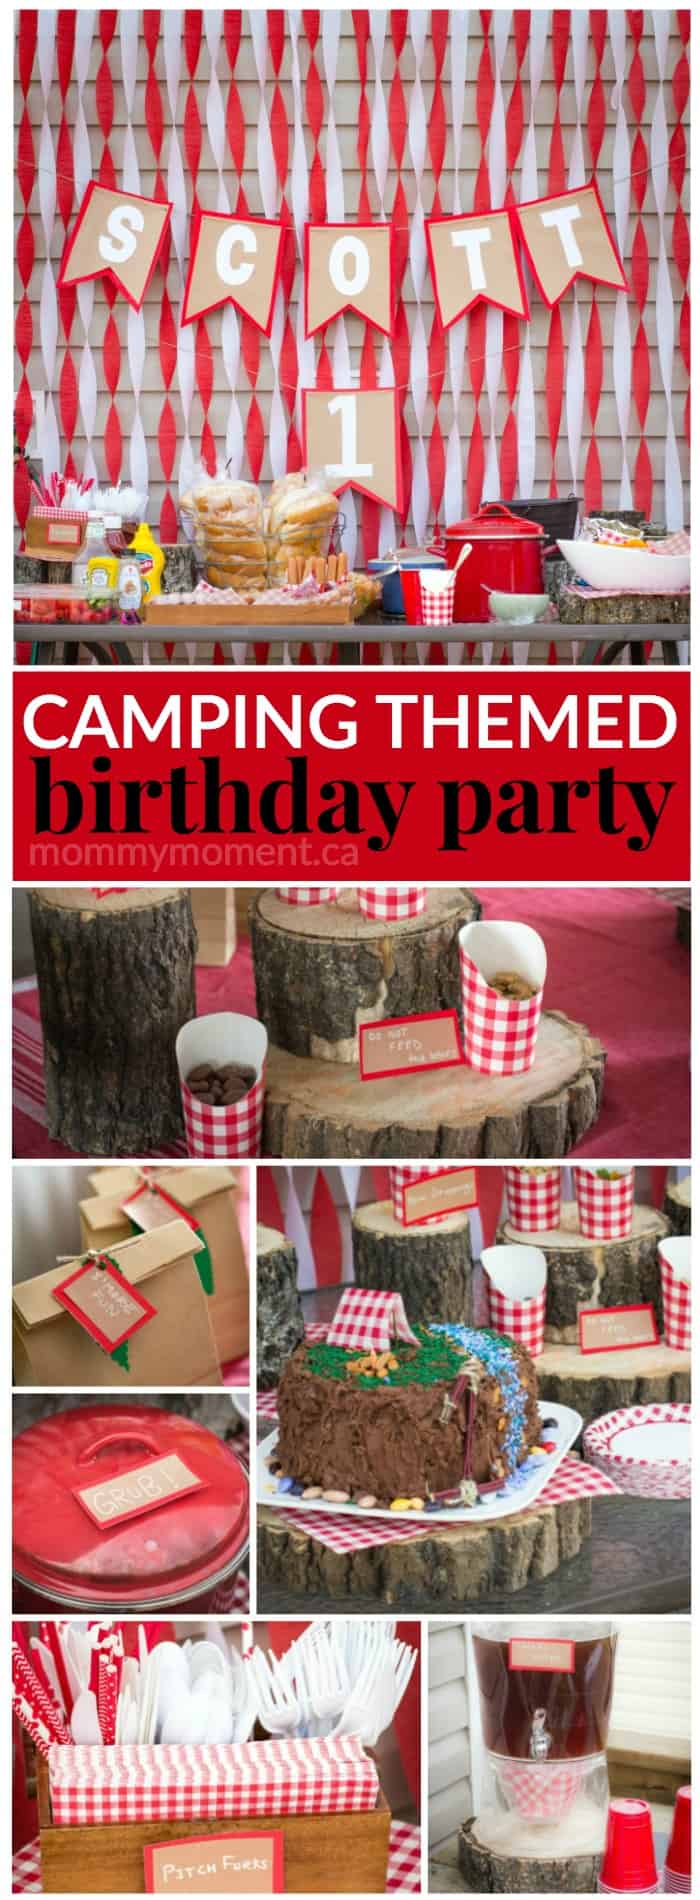 Christmas 1st Birthday Party Ideas Part - 22: Camping Themed Birthday Party So Cute For A First Birthday Party Idea.